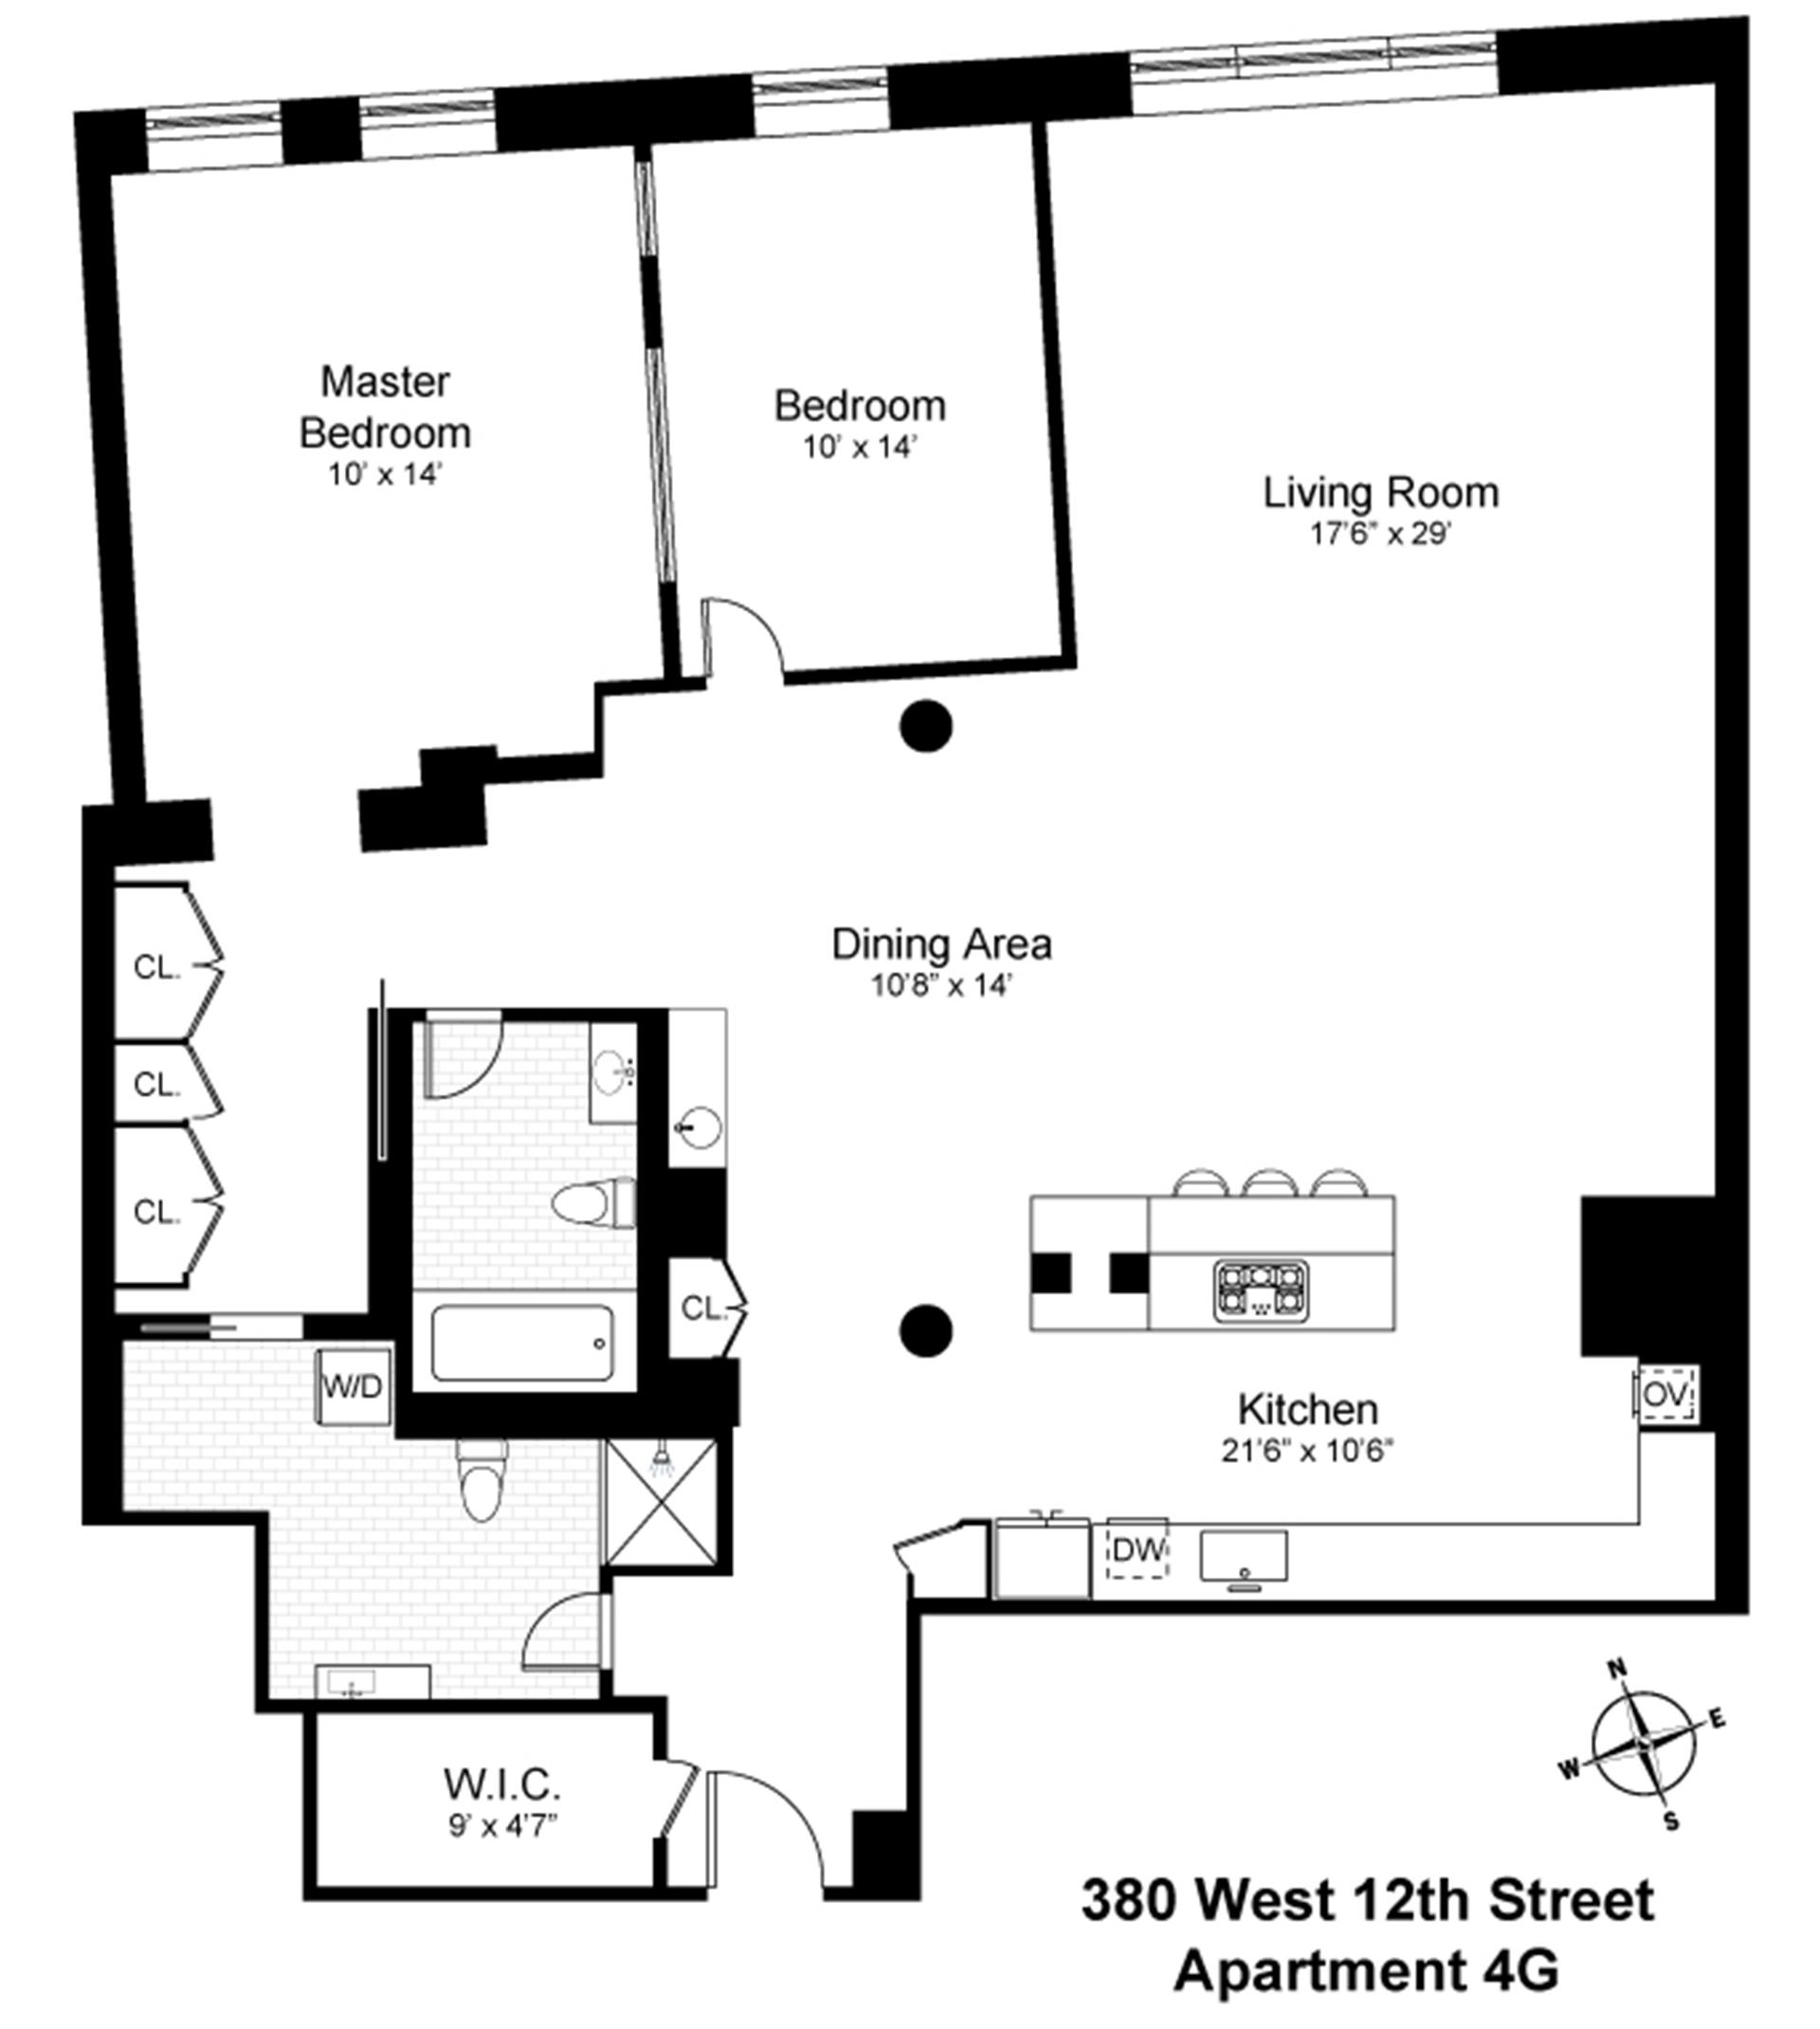 Floor plan of 380 West 12th Street, 4G - West Village - Meatpacking District, New York